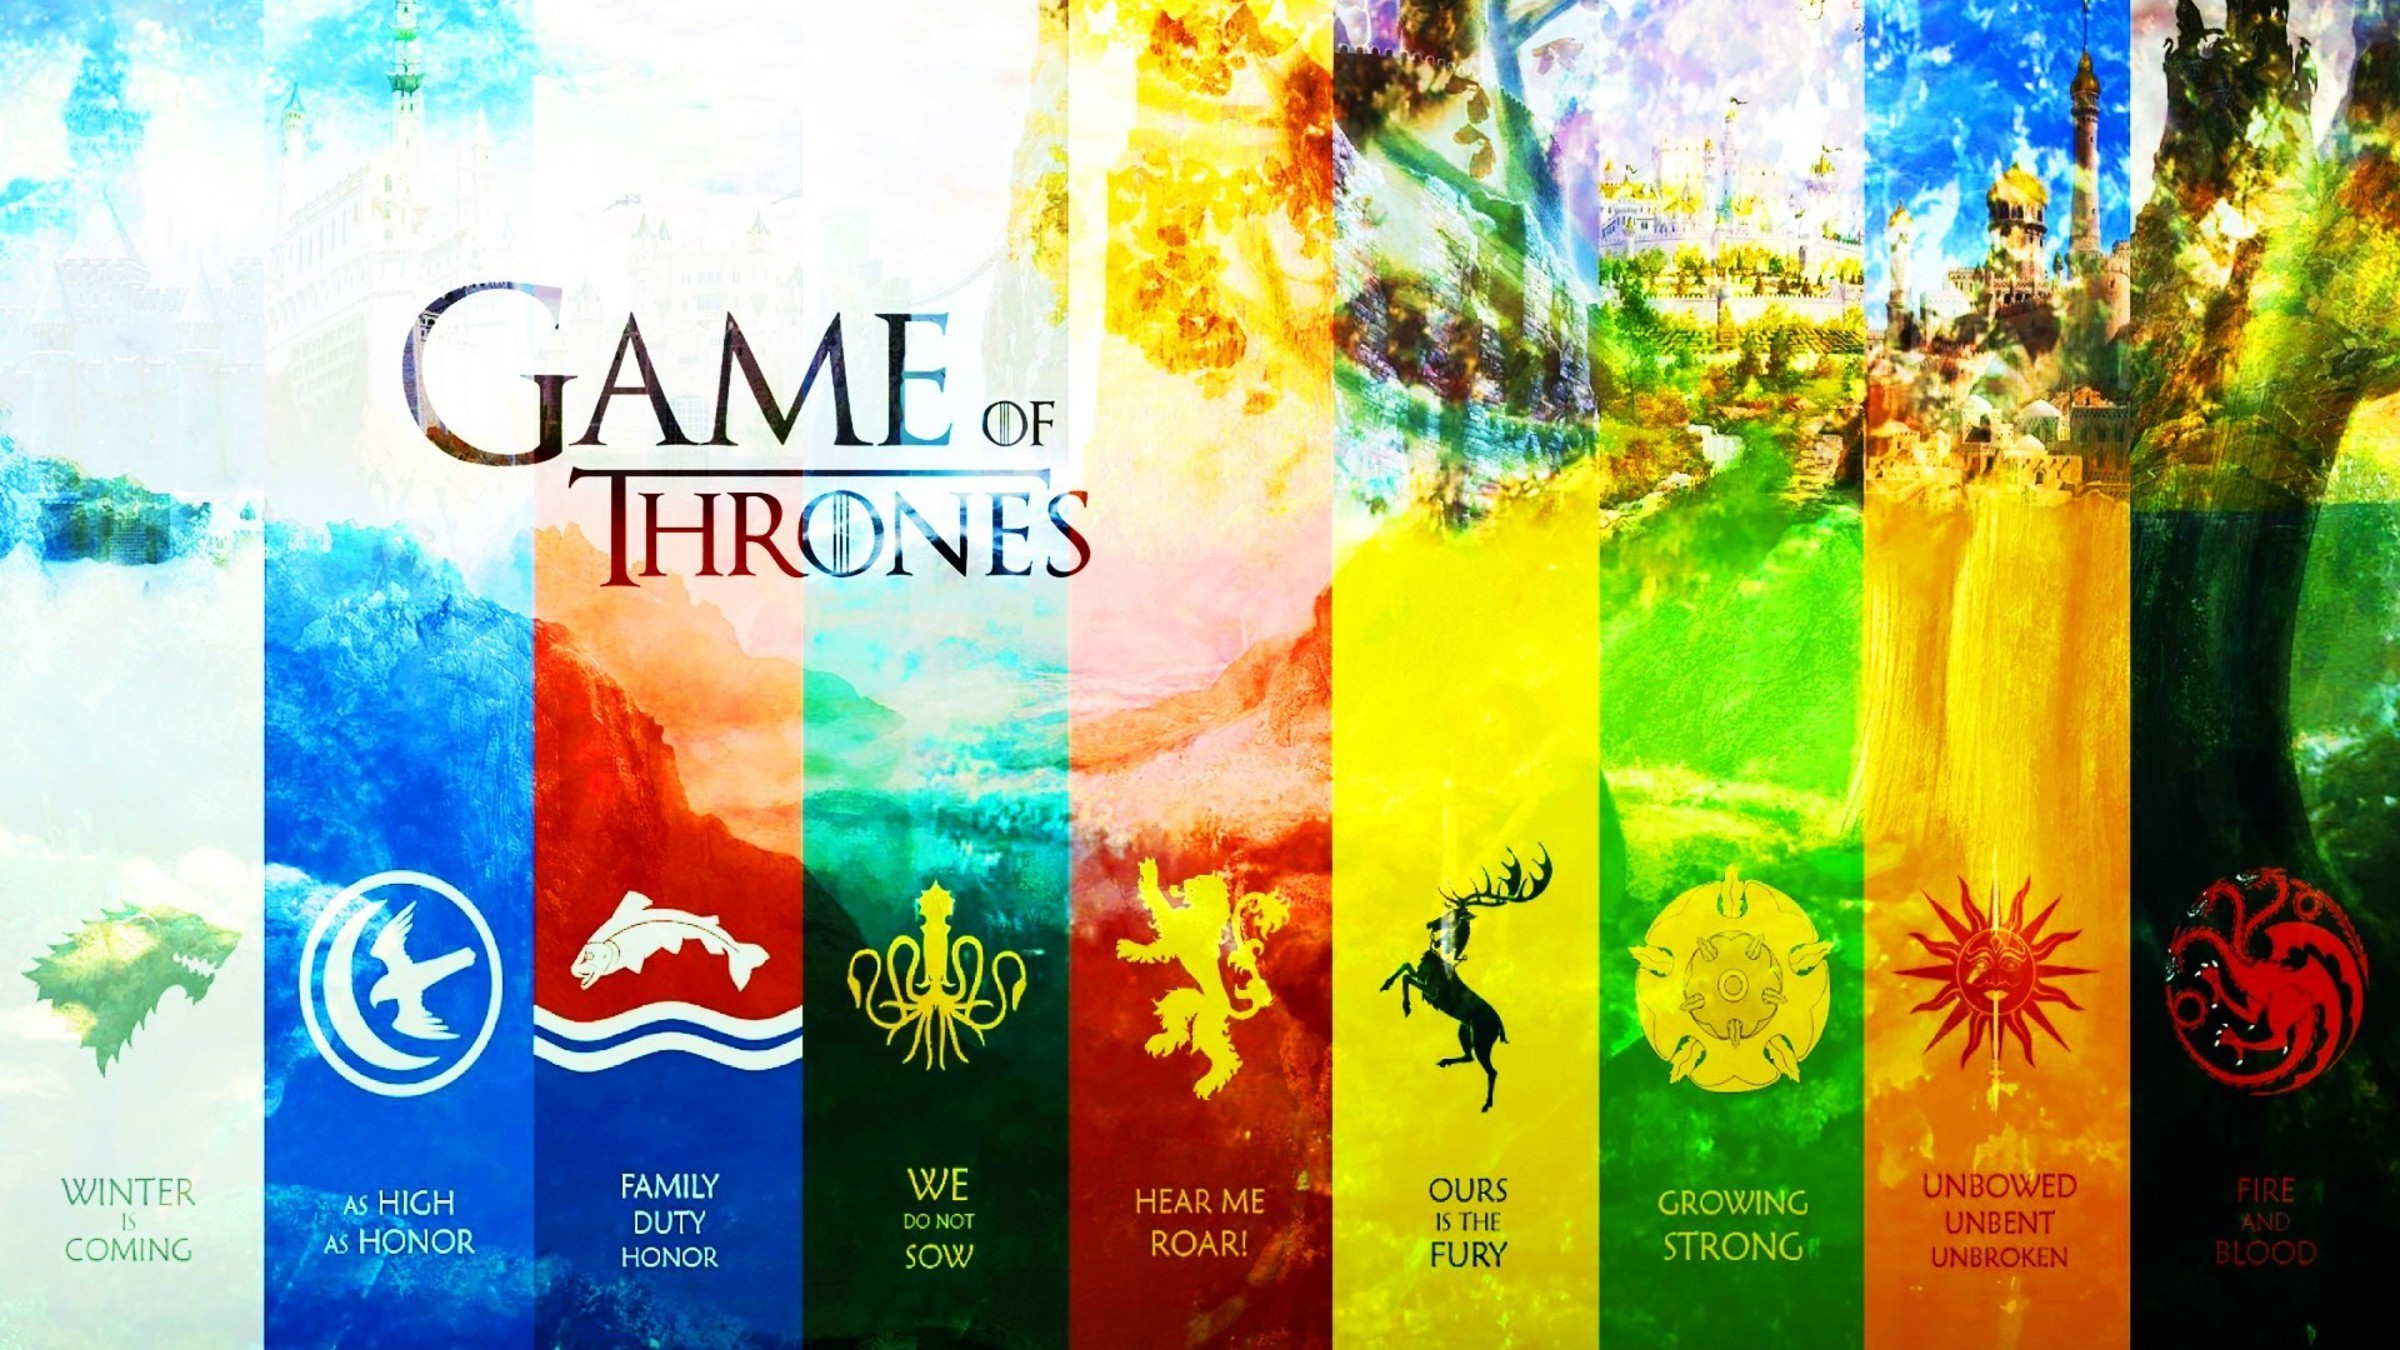 Game Of Thrones Maison Arryn Baratheon Greyjoy Lannister Papier